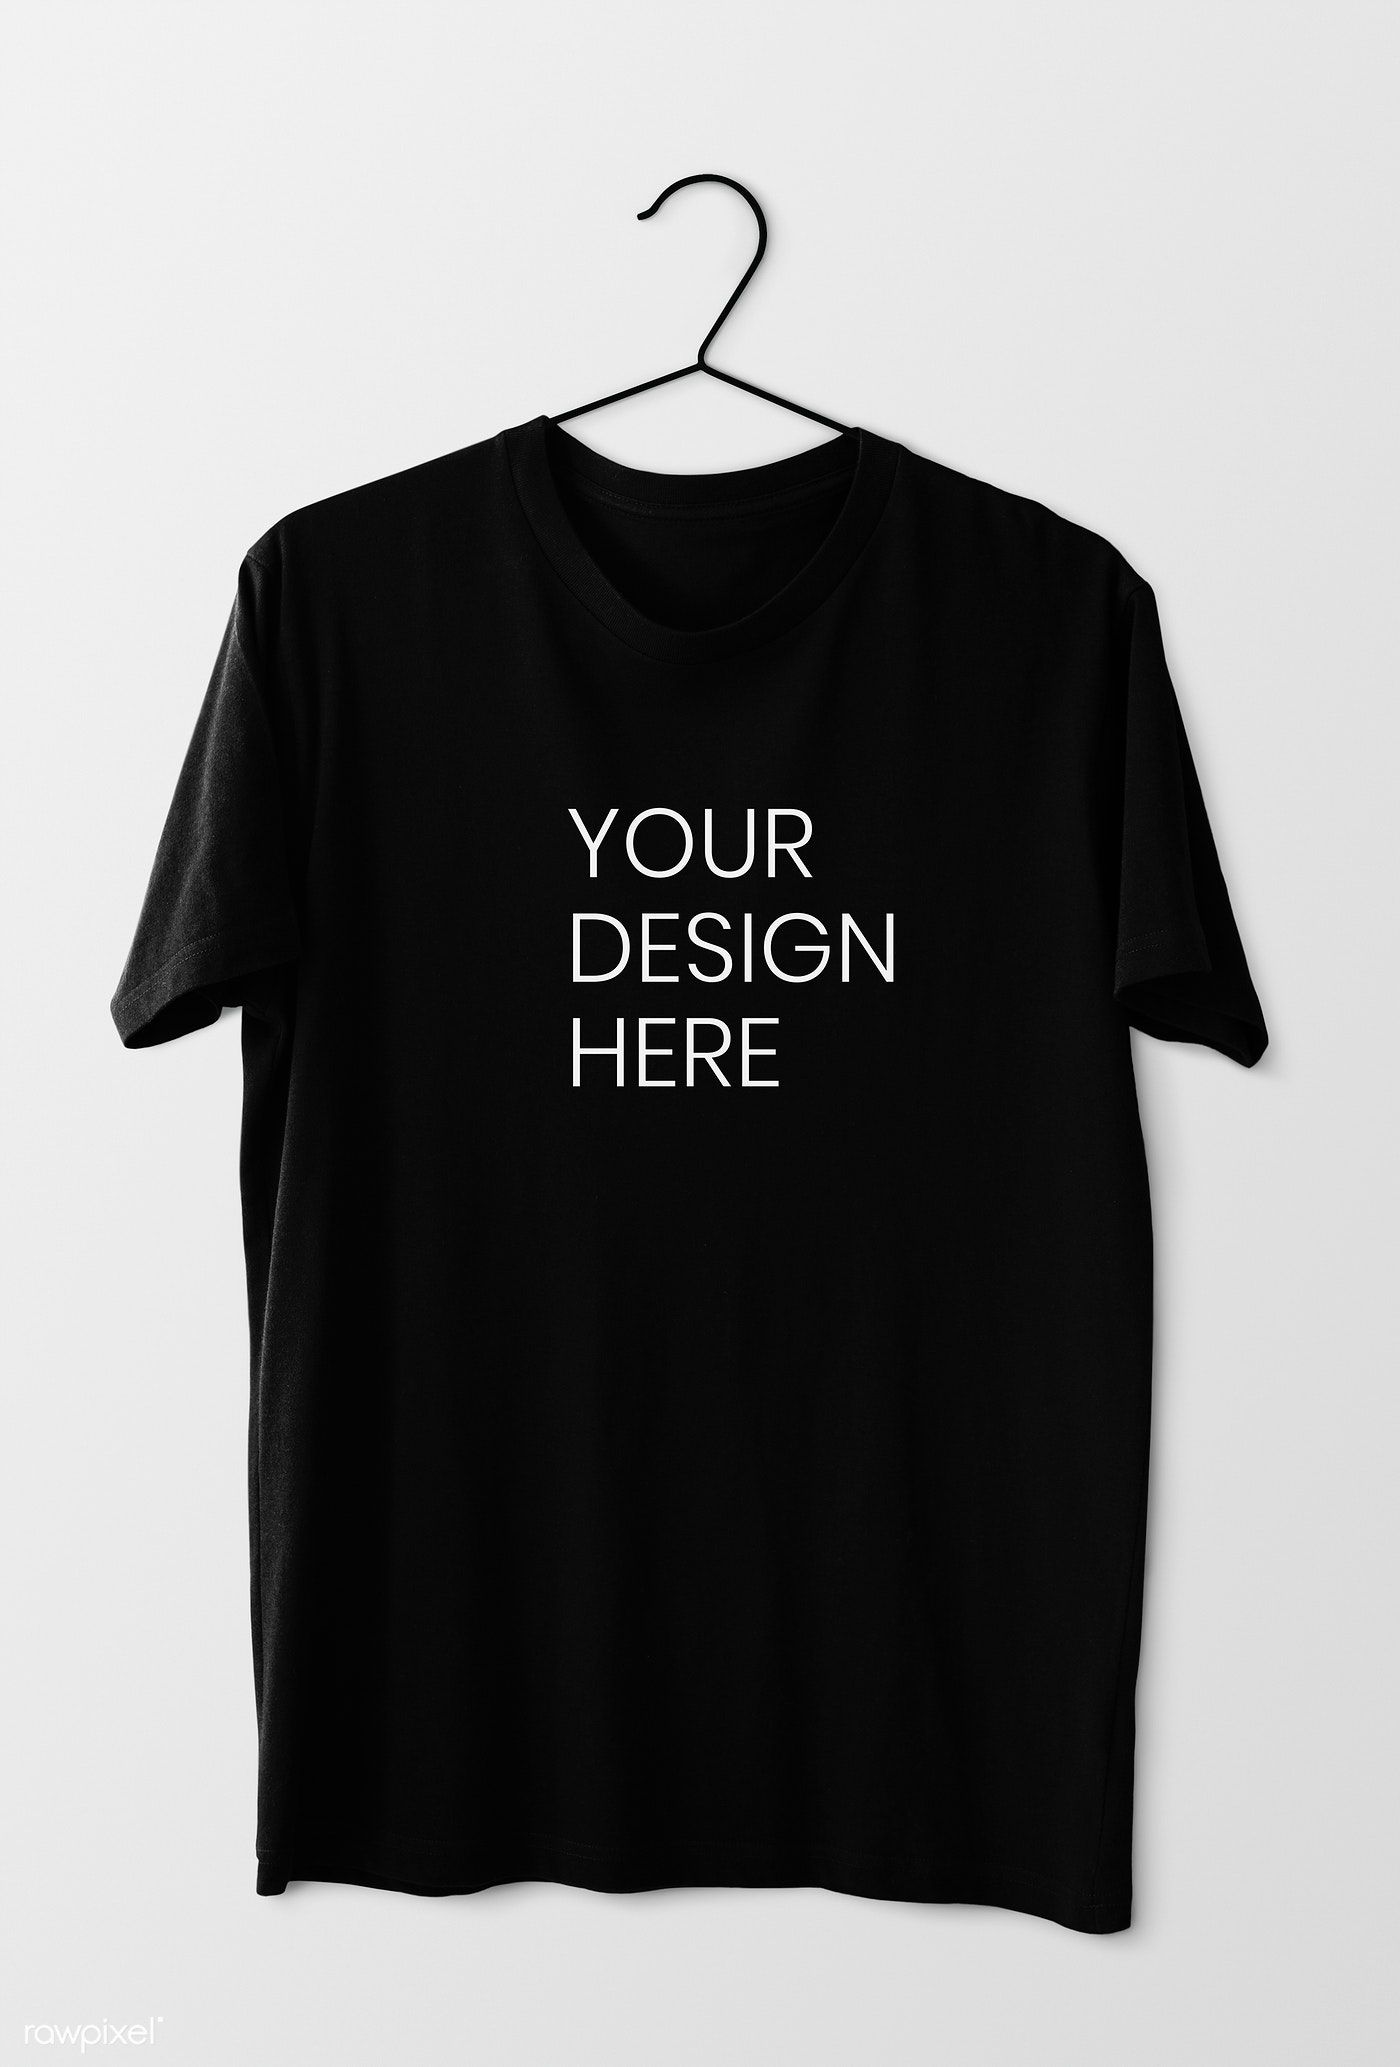 Don't forget to check out the full size preview! Download Premium Psd Of Simple Black Tee Mockup On A White Wall 598463 Black Tee Plain Black Tee Black Tshirt